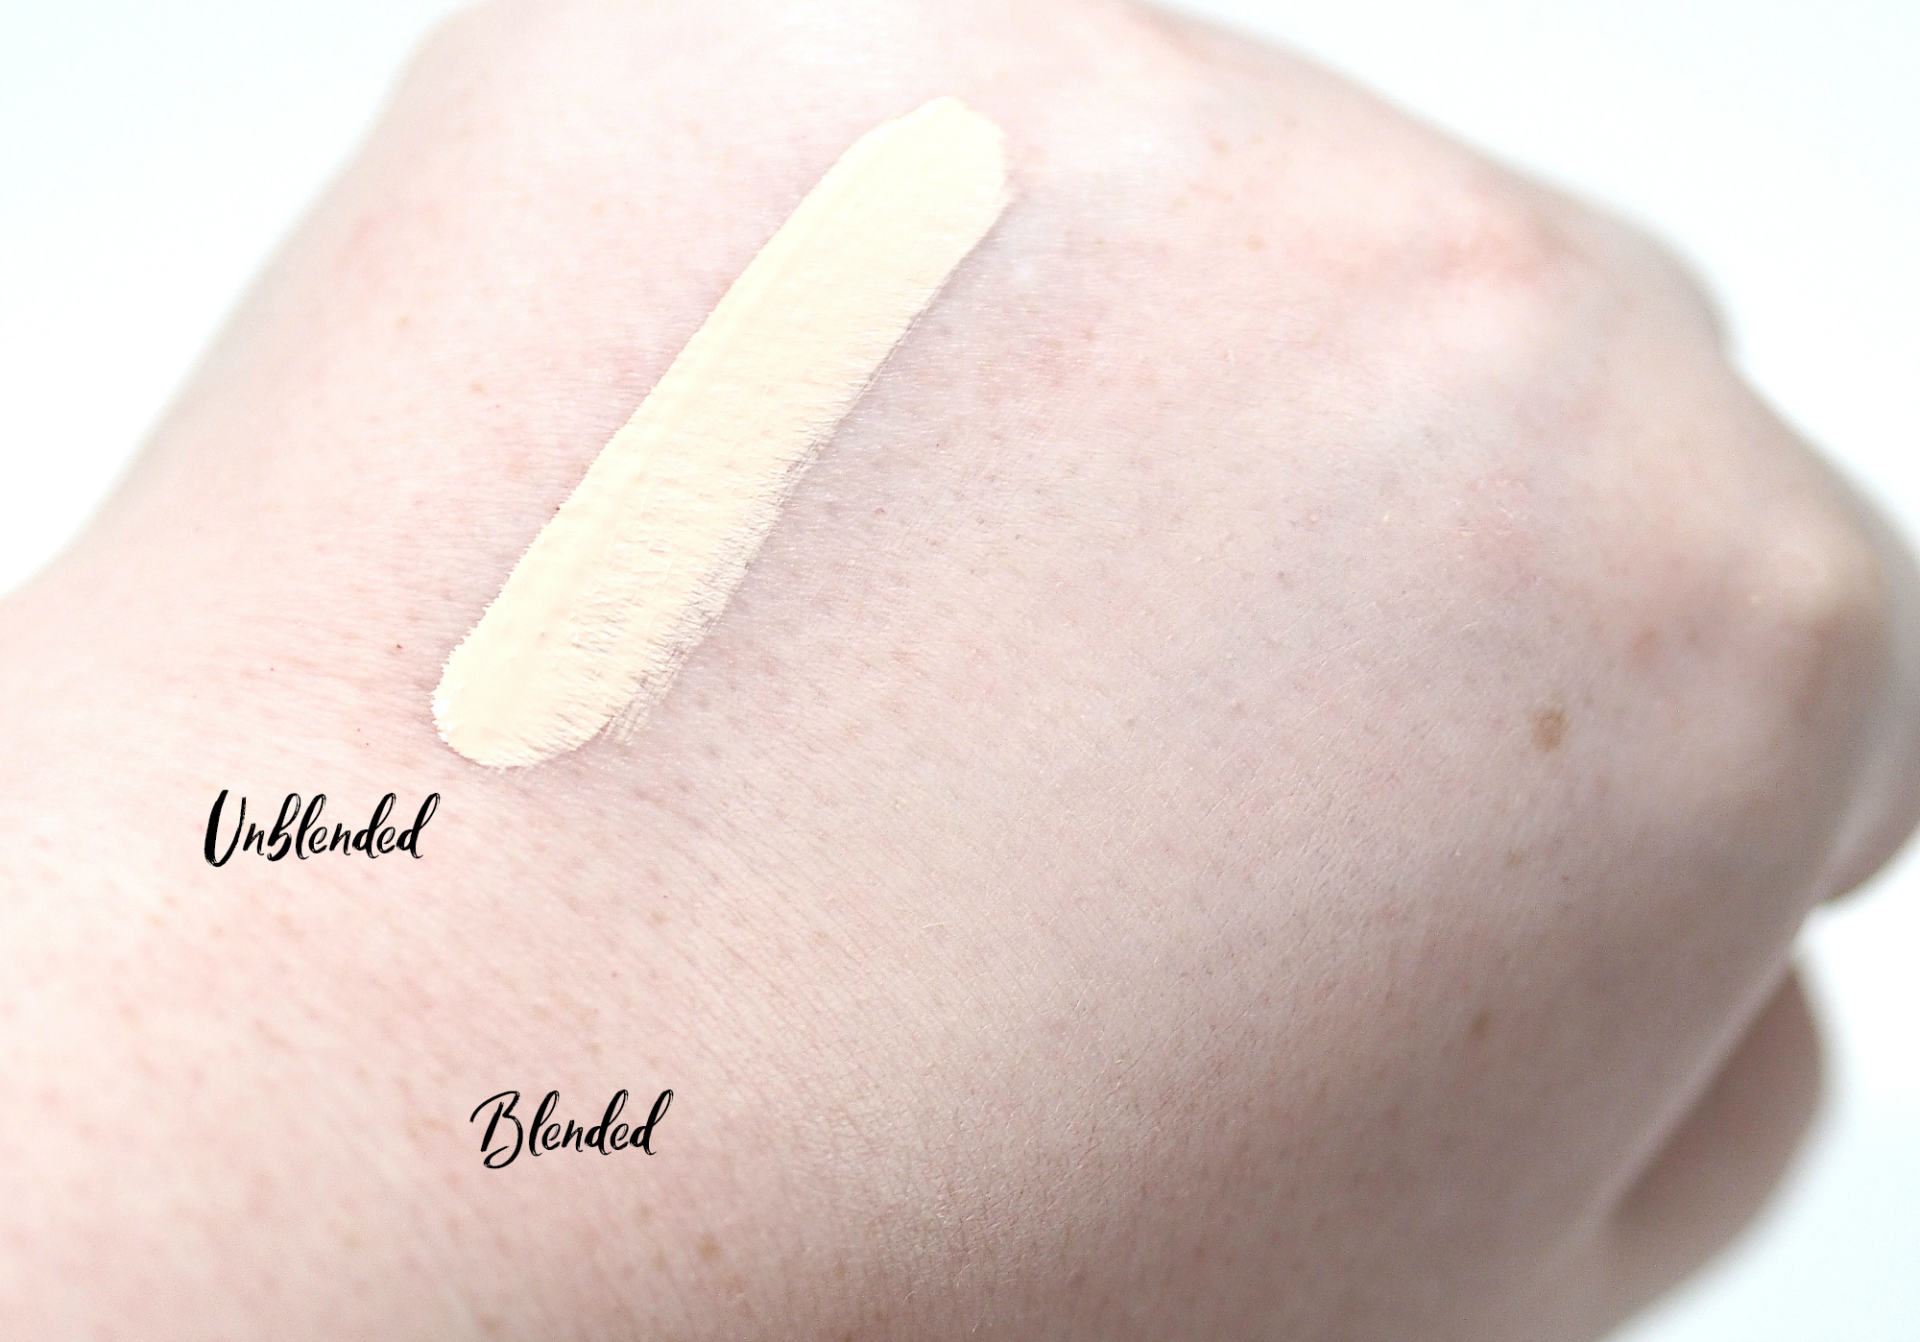 ELF 16Hr Camo Concealer Review and Swatches